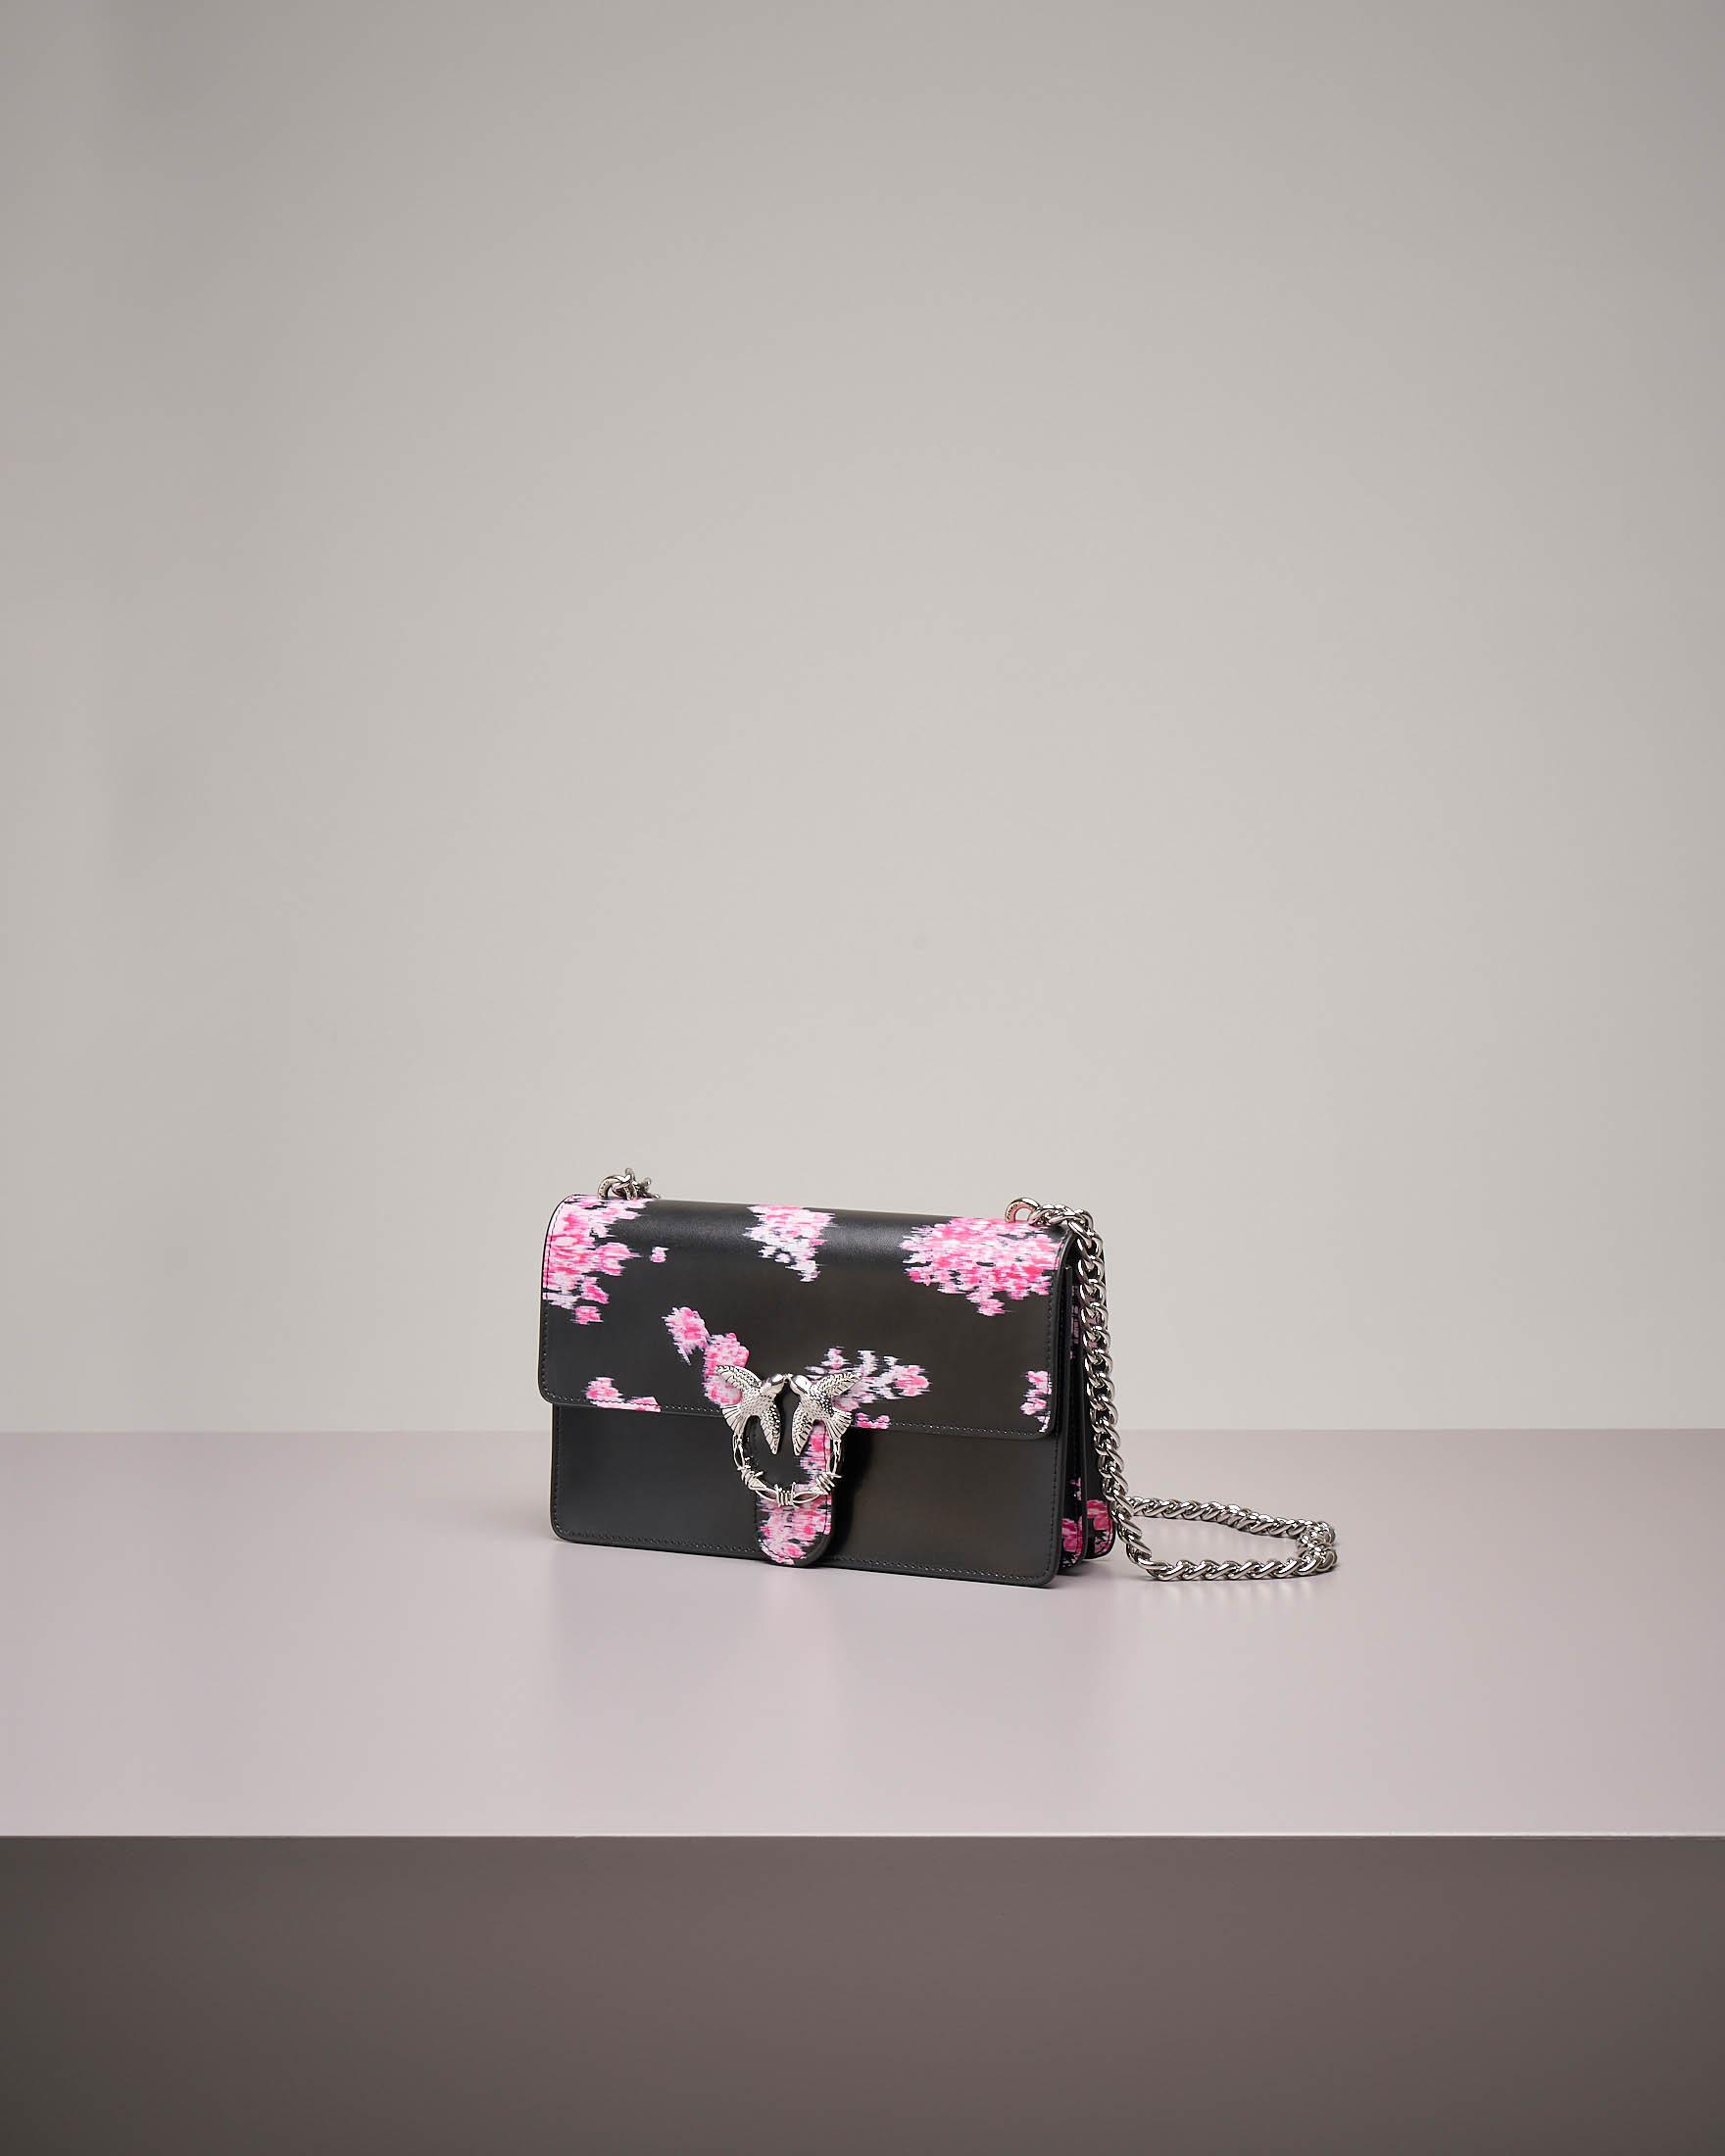 Love Bag Flower: tracolla con stampa floreale